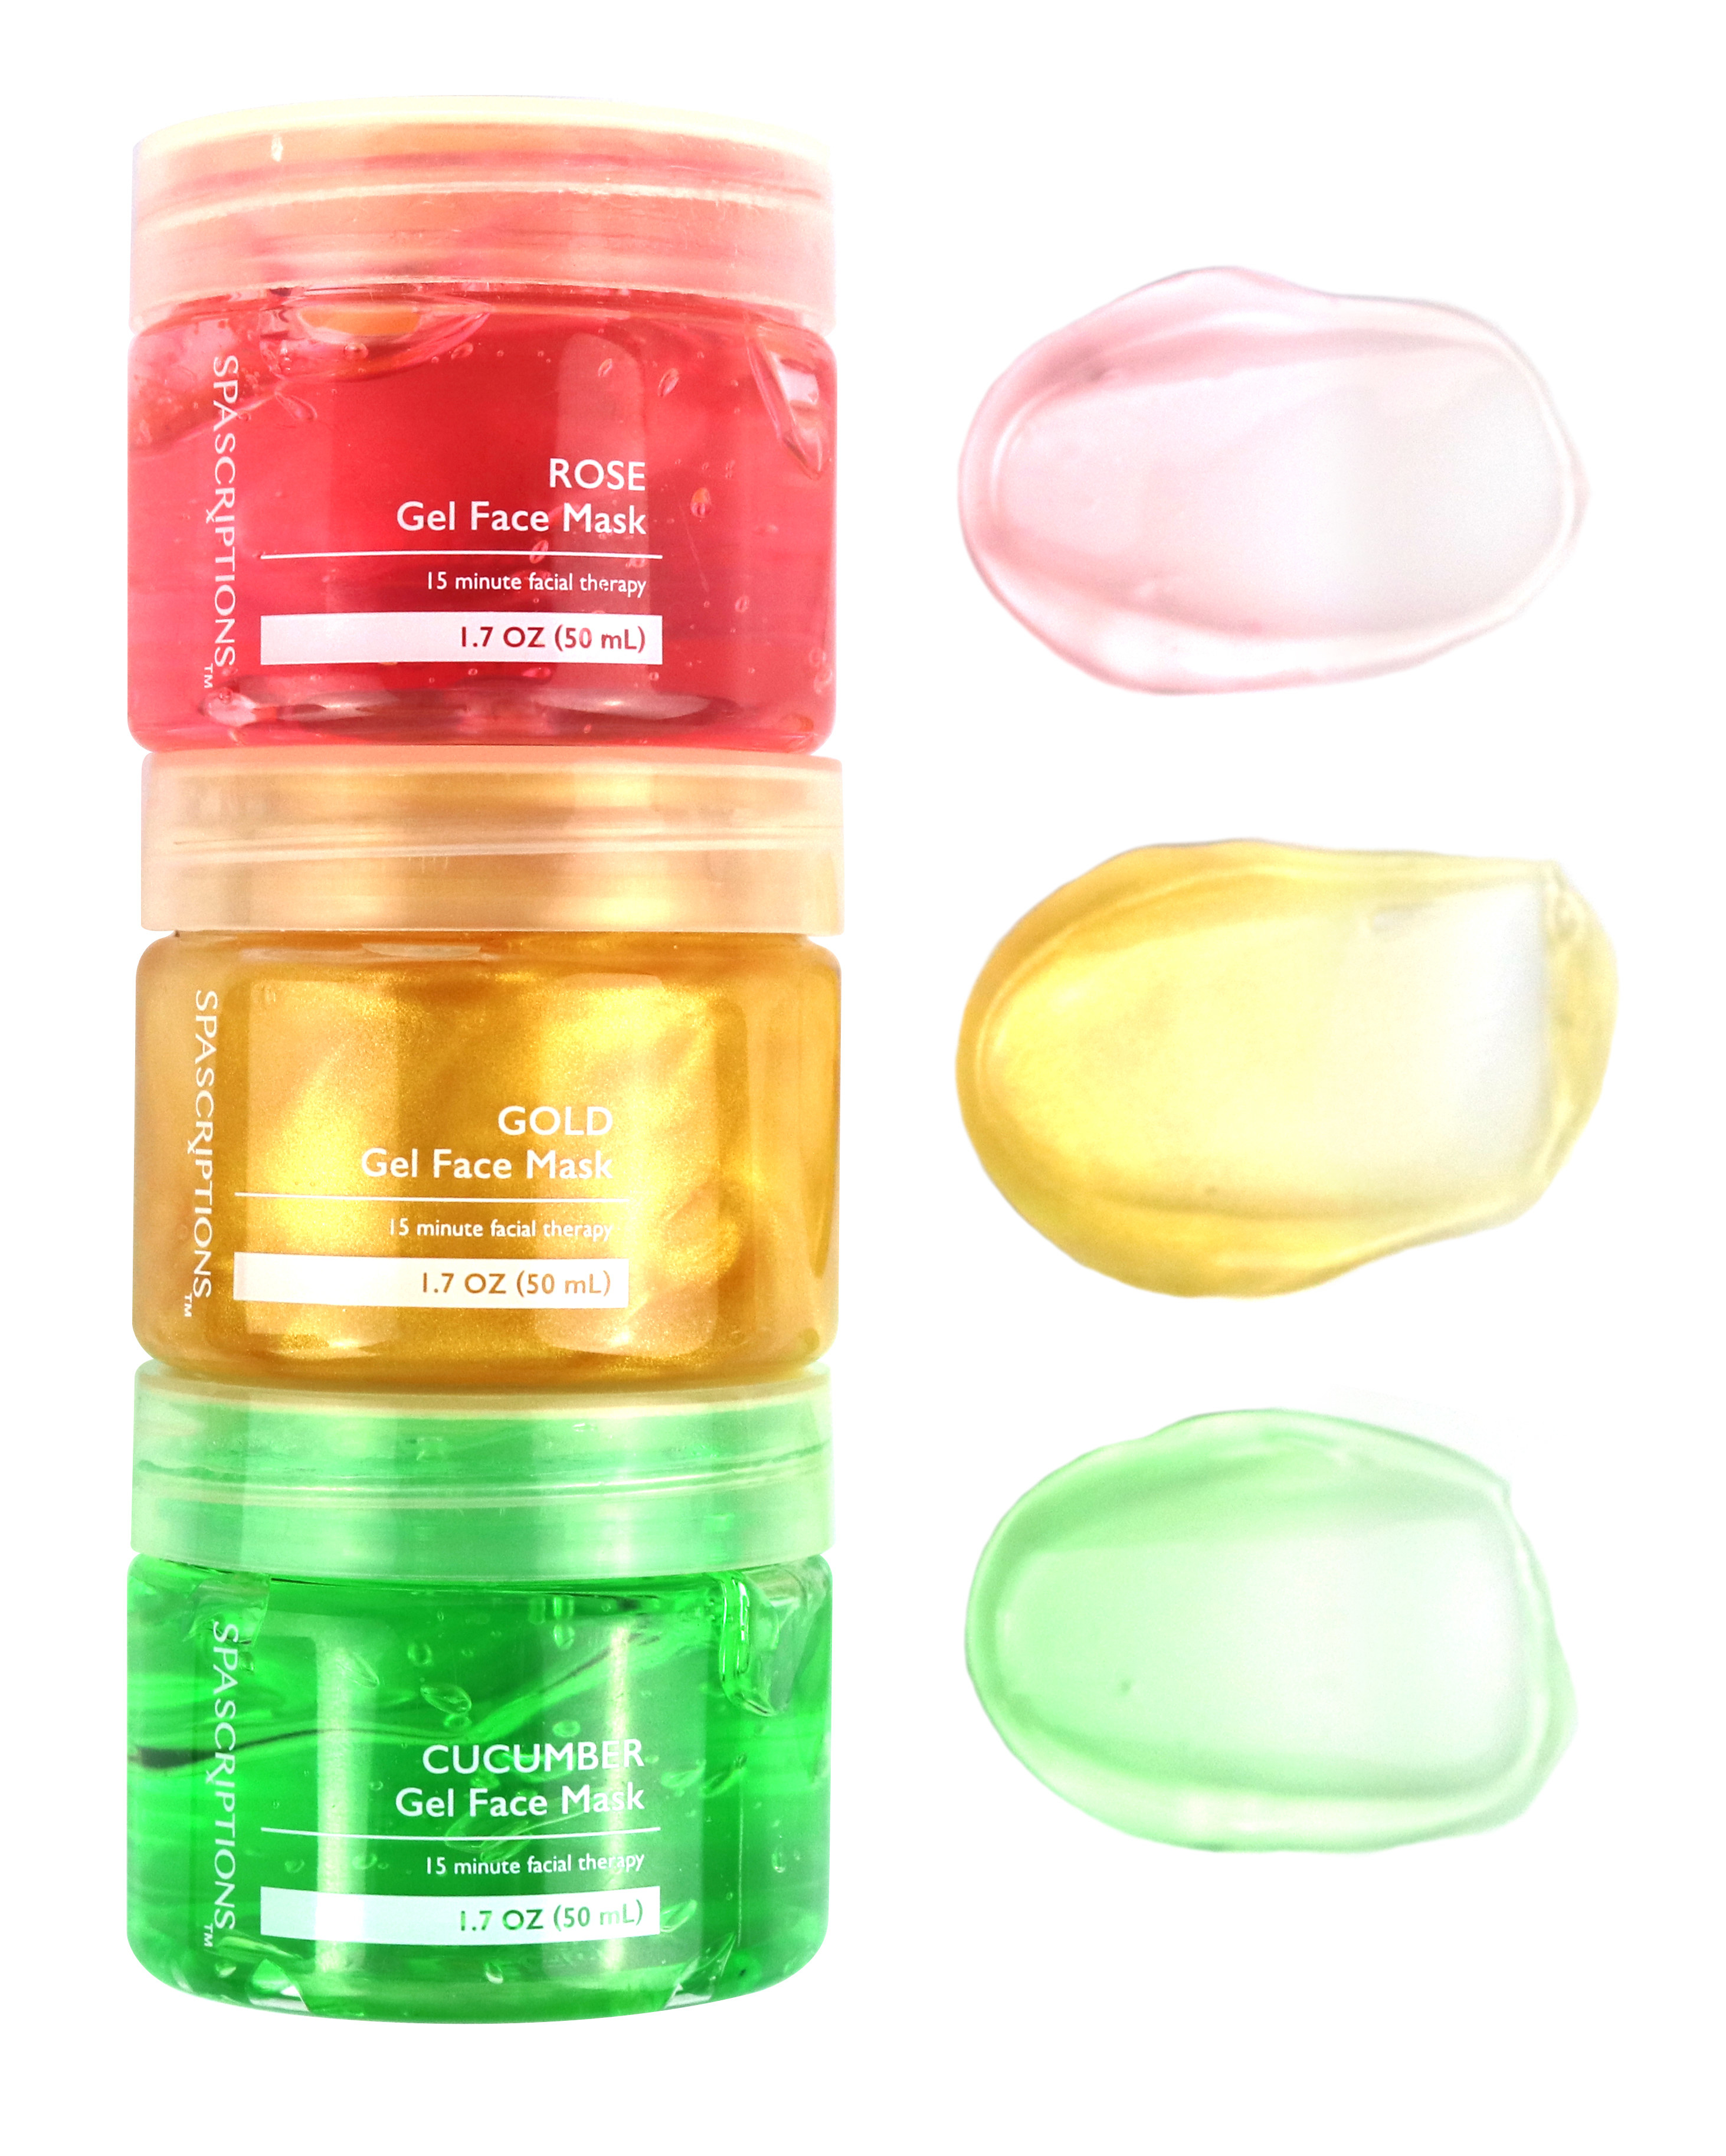 The face mask set beside swaps of the product to show its smooth, gel-like consistency